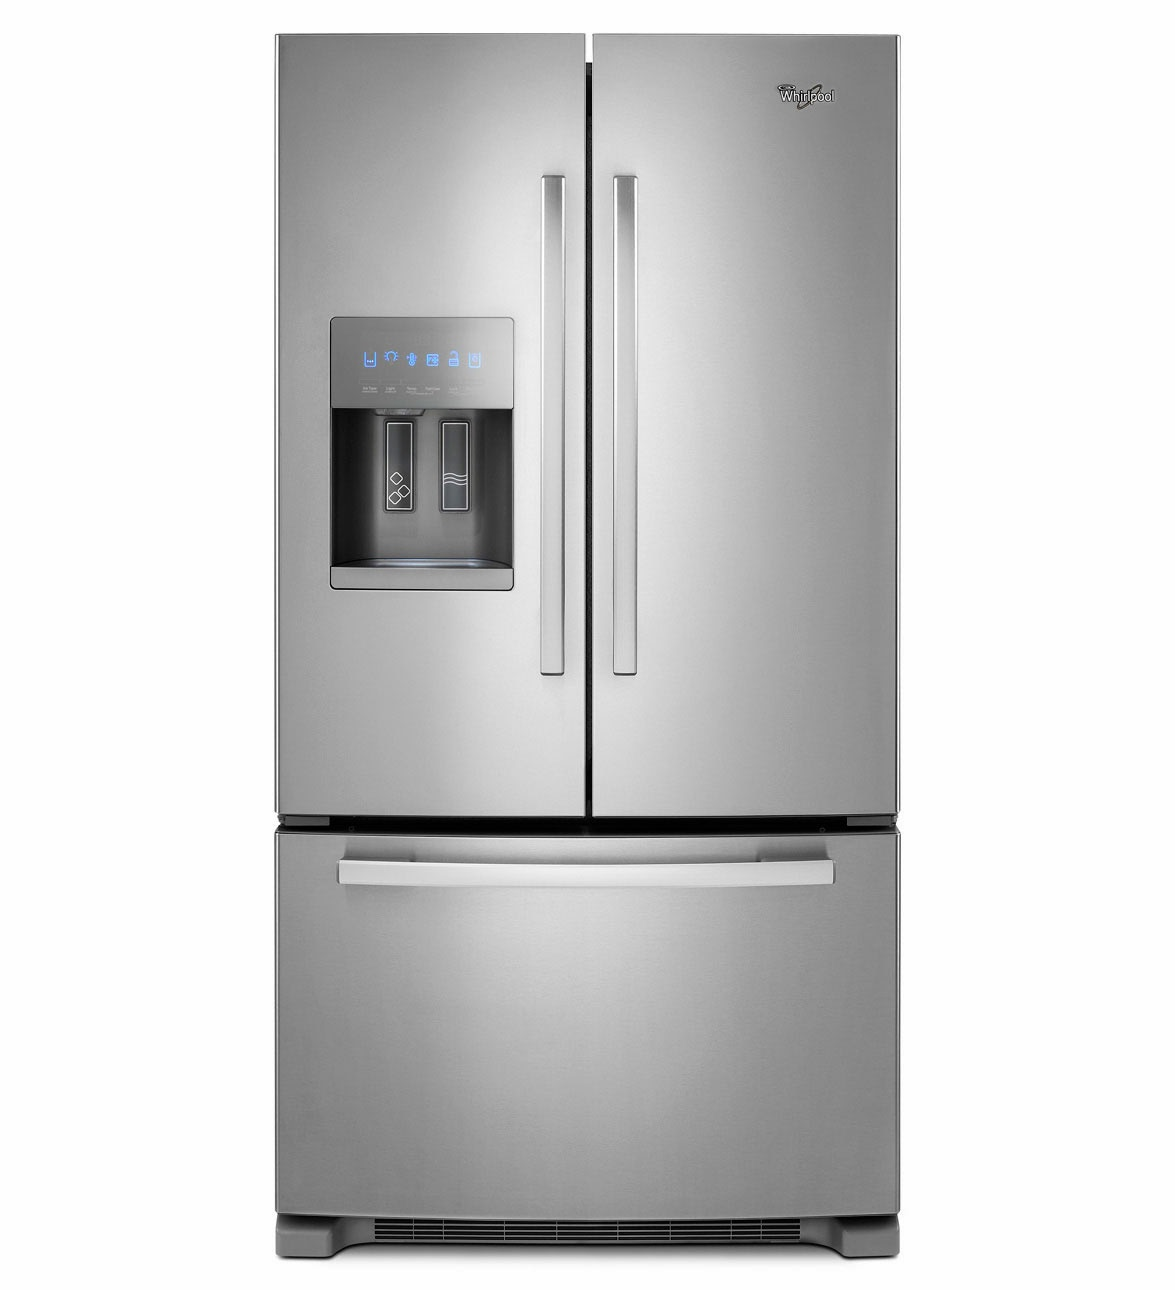 whirlpool refrigerator brand whirlpool gi6fdrxxy refrigerator. Black Bedroom Furniture Sets. Home Design Ideas